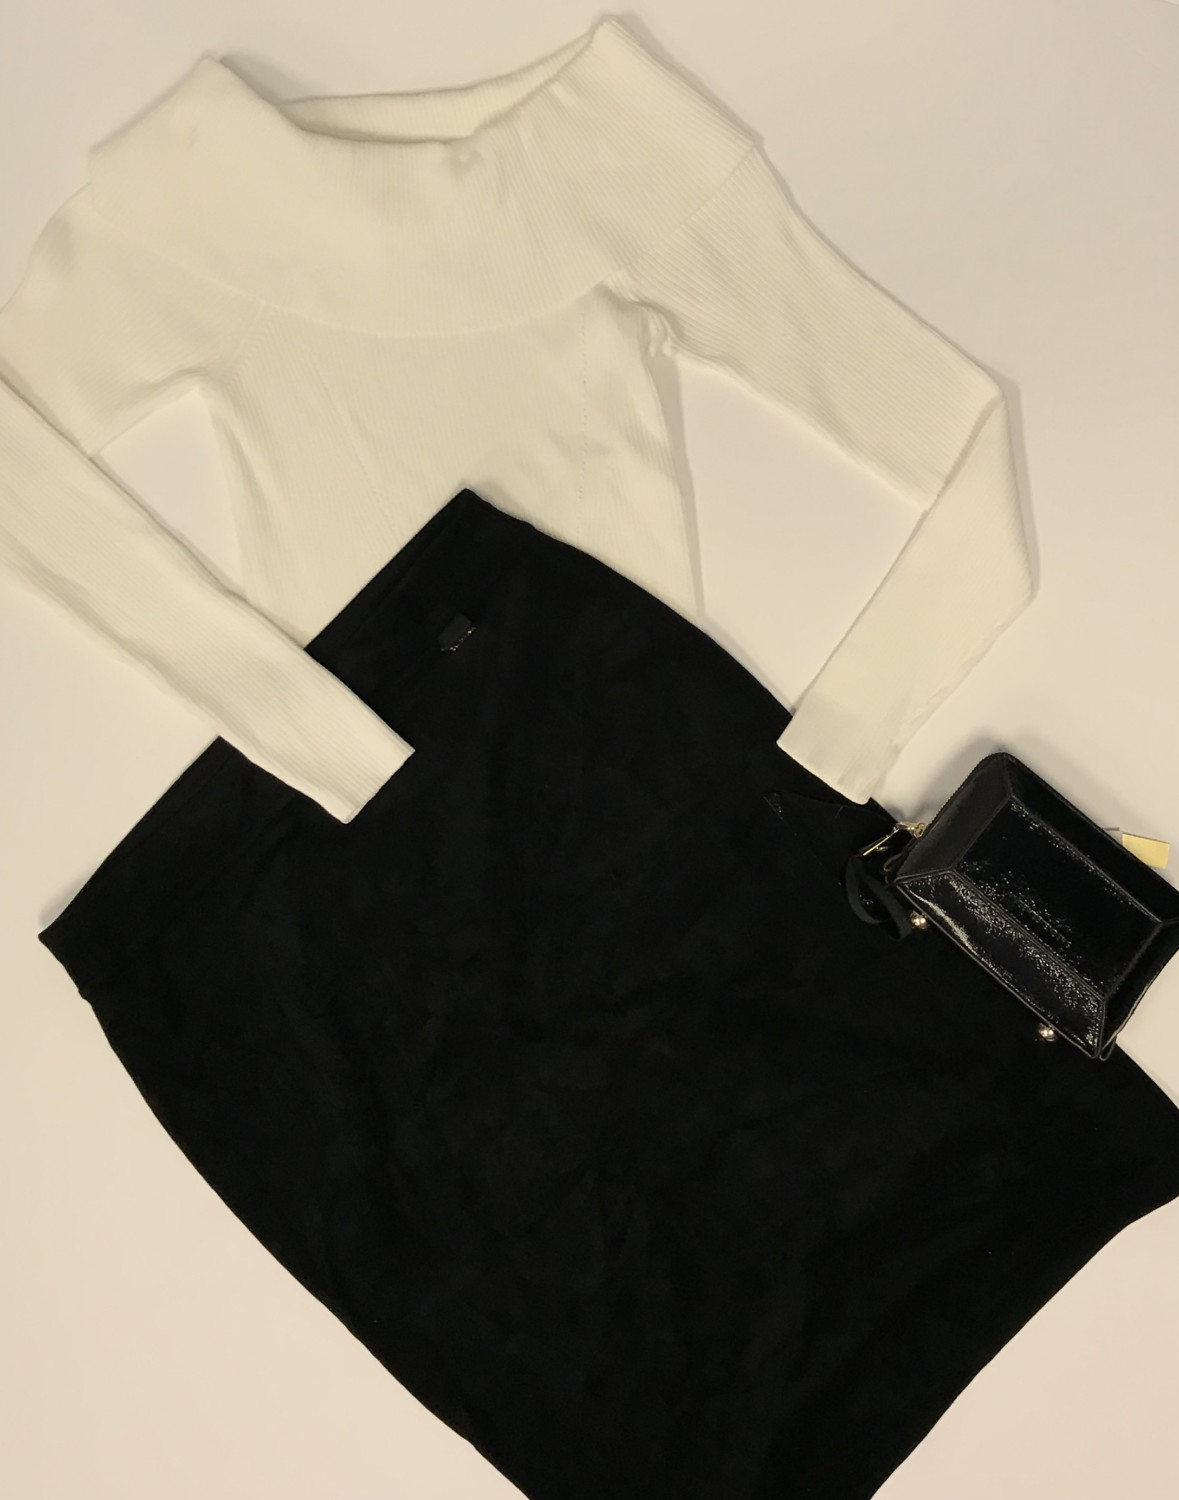 Calvin Klein Skirt – Original Retail: $69, CWS: $15